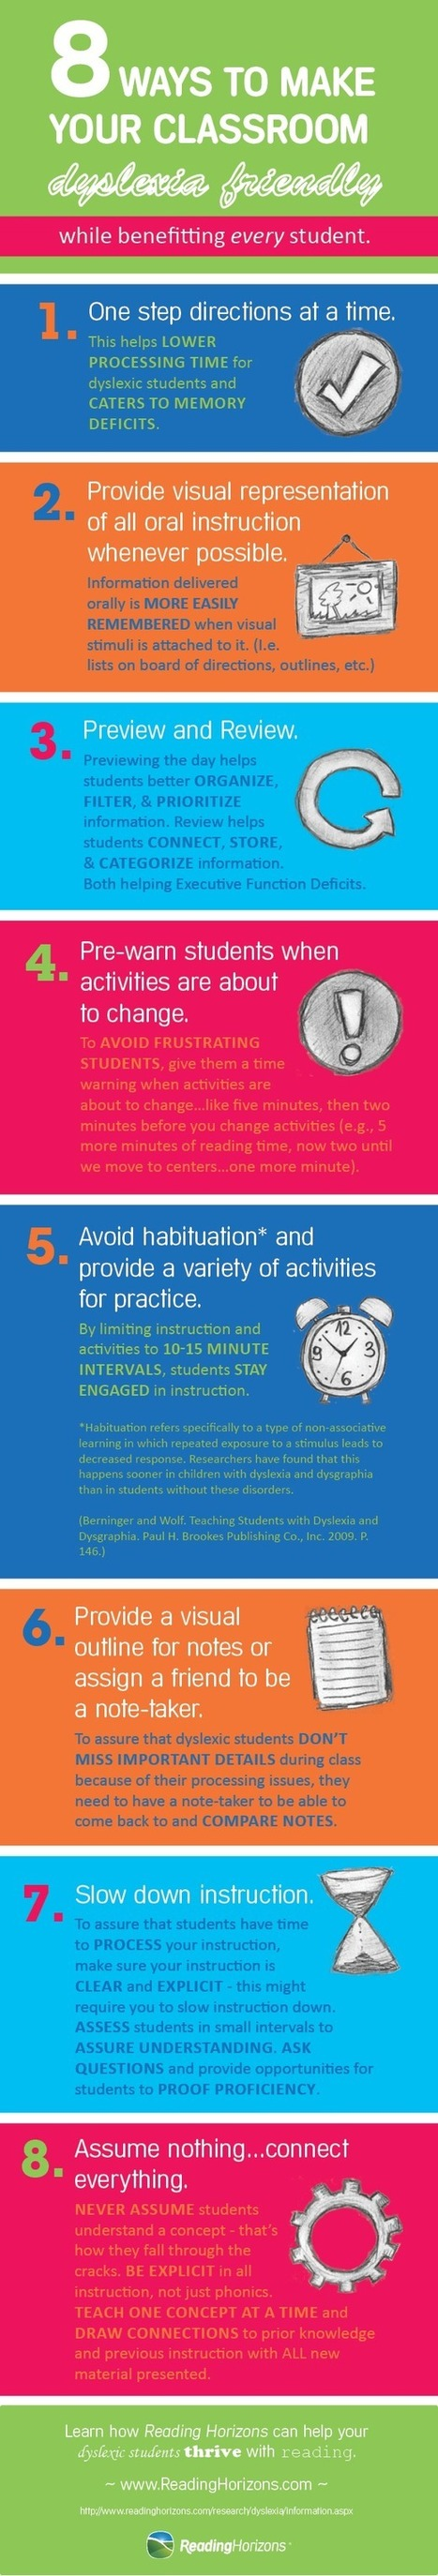 How to Make Your Classroom Dyslexia Friendly Infographic - e-Learning Infographics | Education Matters - (tech and non-tech) | Scoop.it